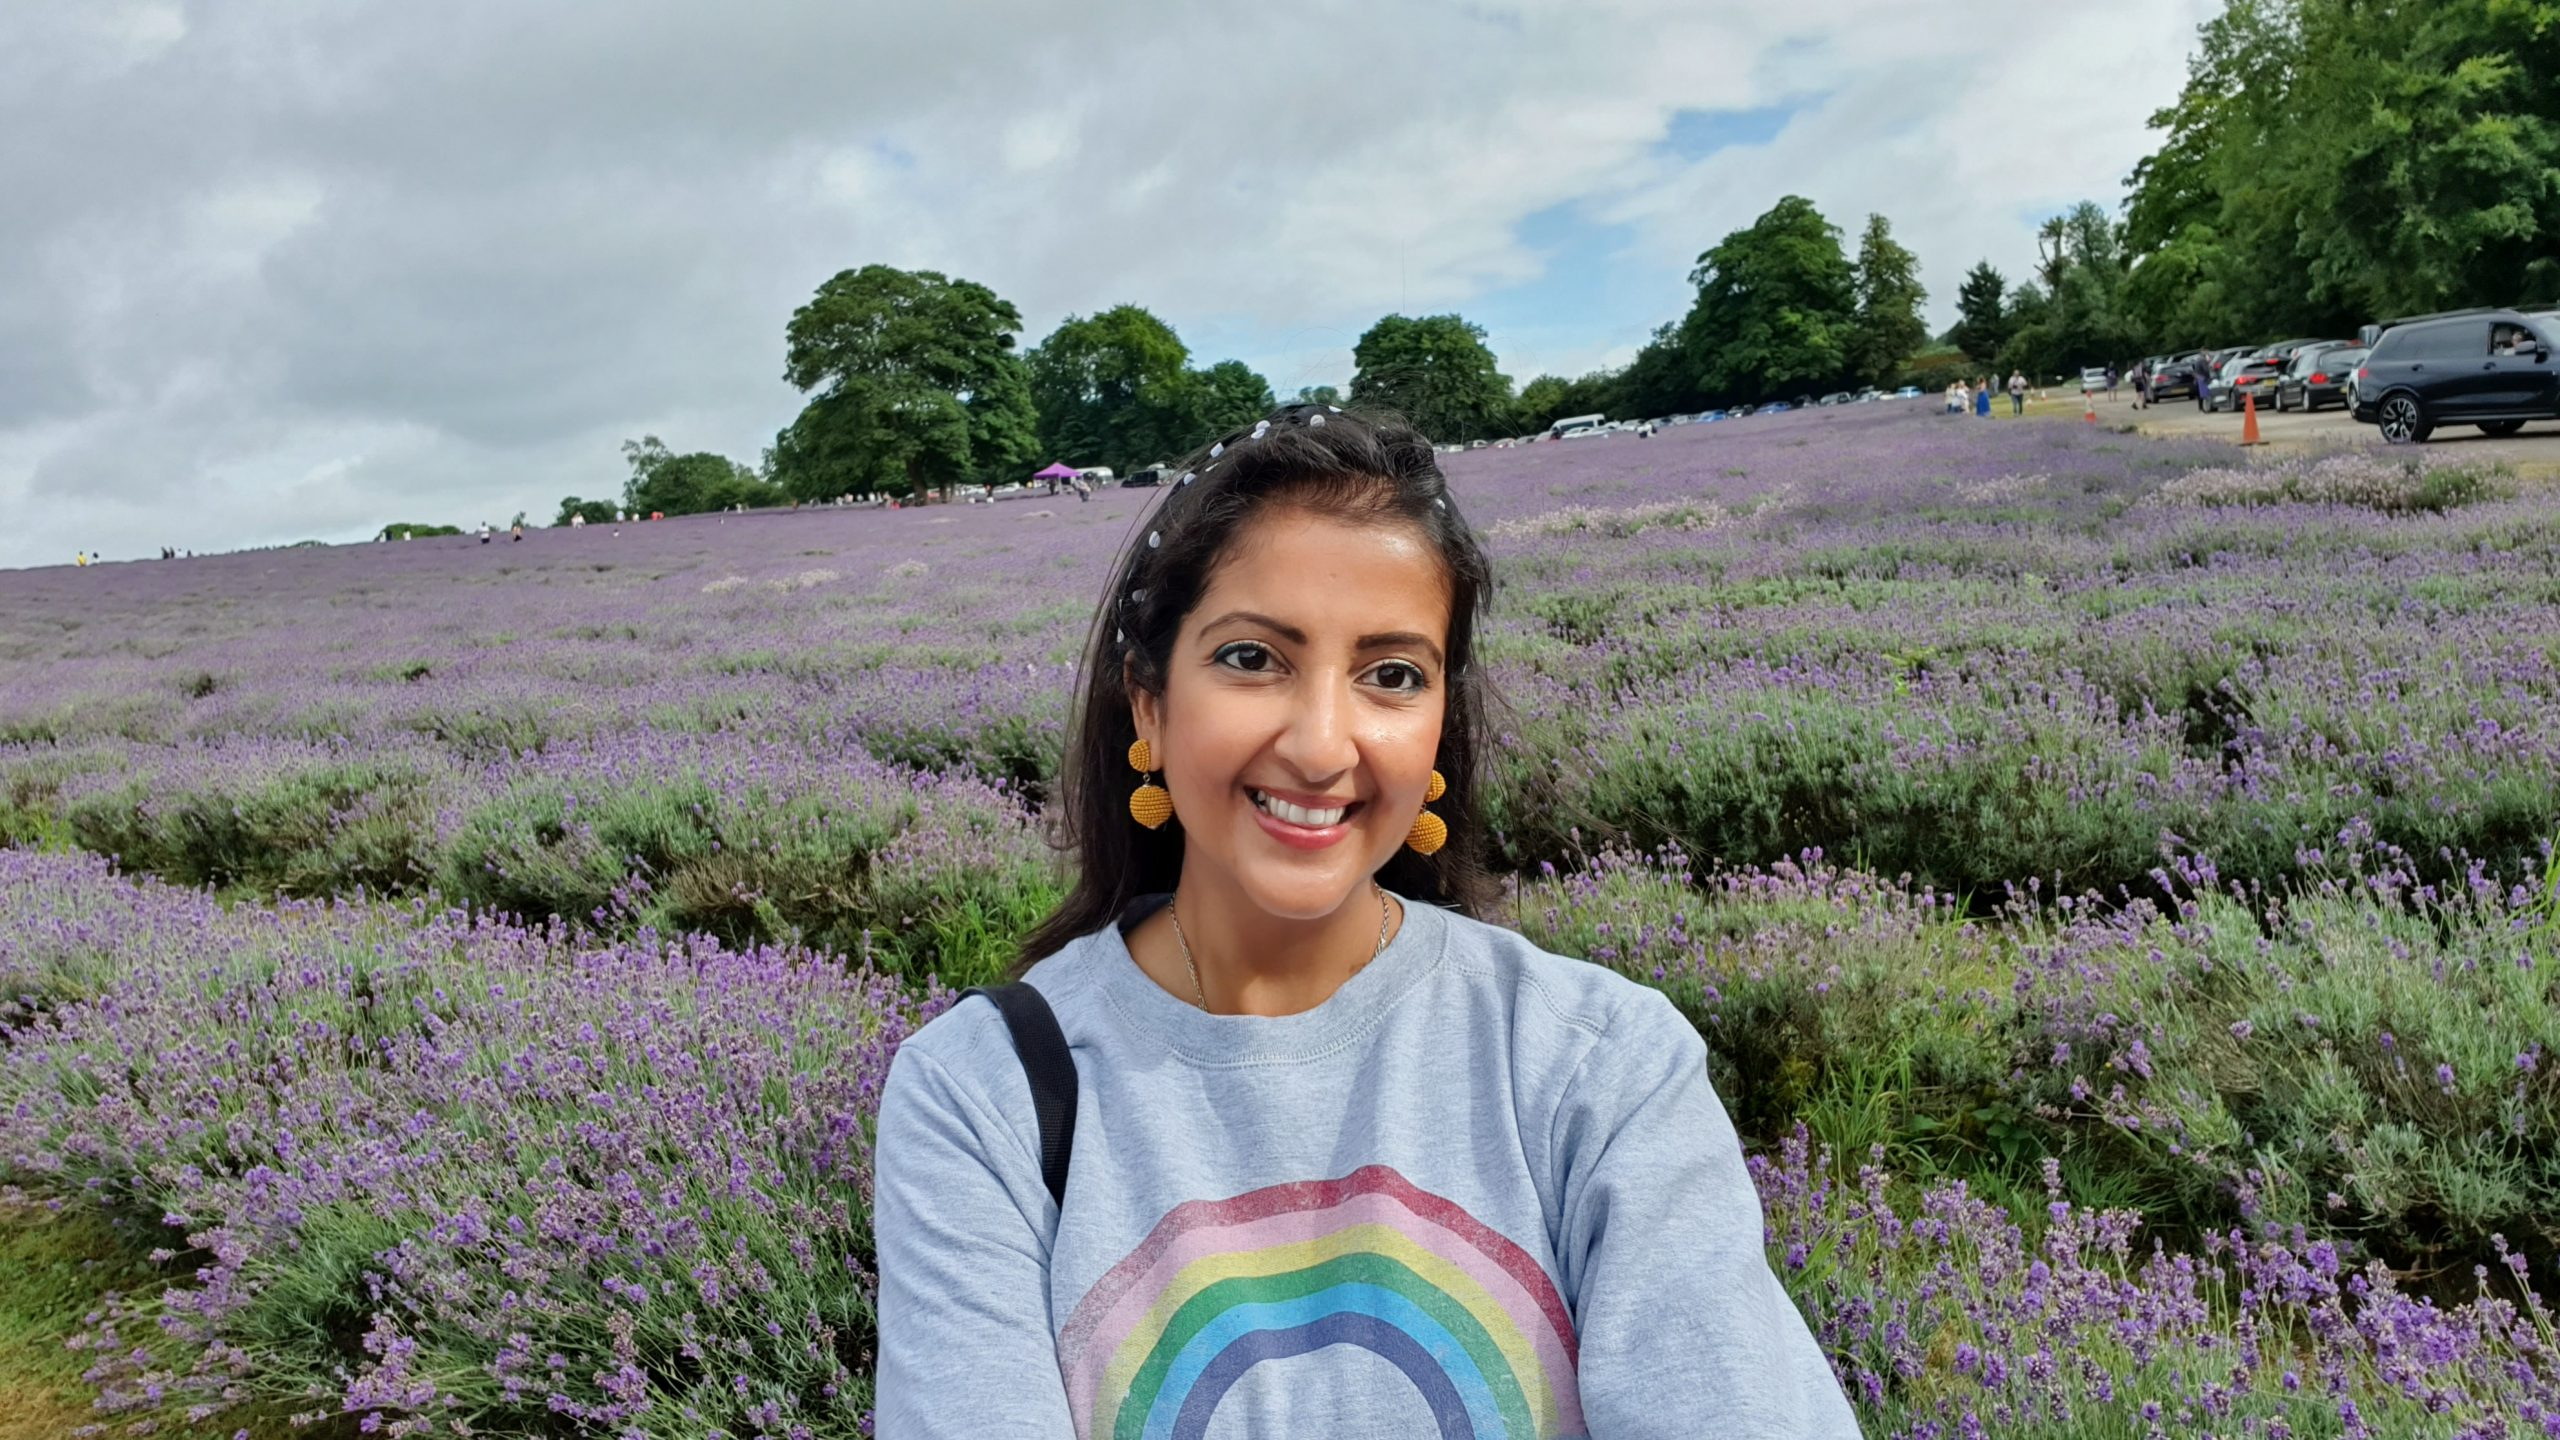 Kreena Dhiman has been vocal about her experiences with breast cancer and surrogacy and hopes sharing her story will have an impact